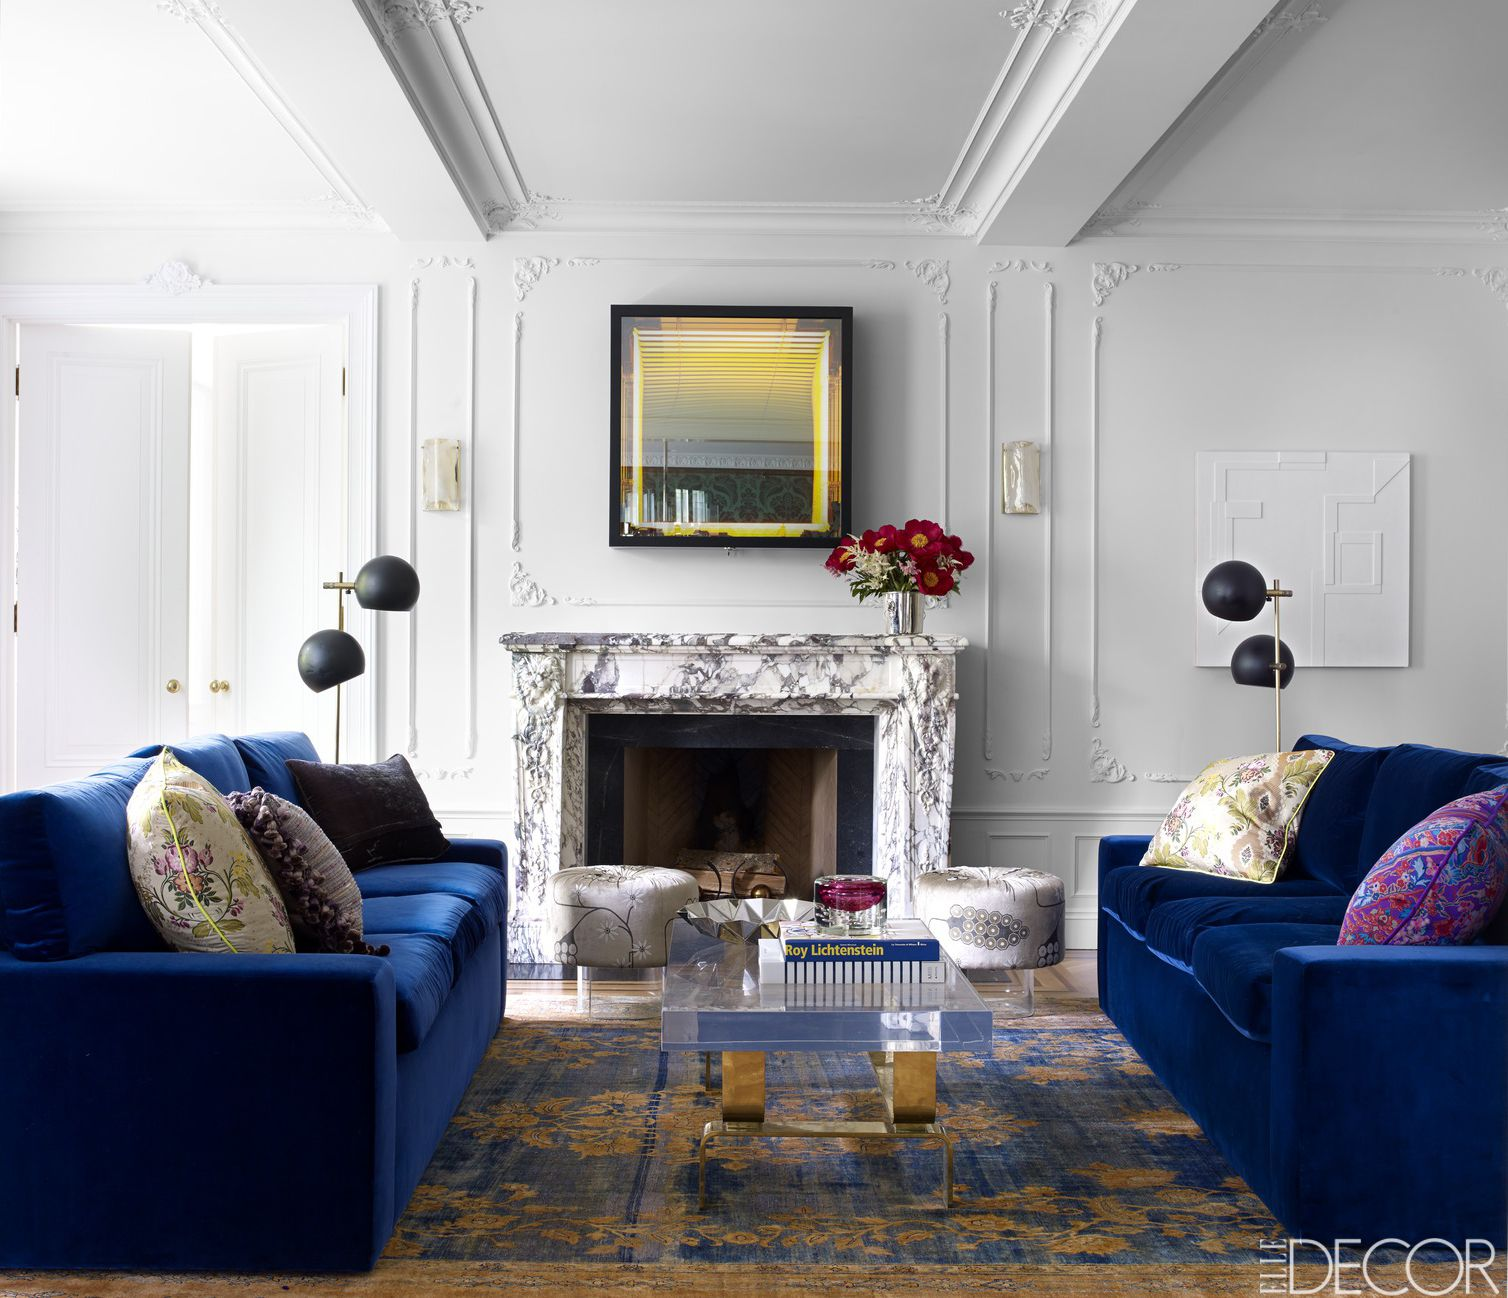 Interio Sofa Harrison 20 Dazzling Rooms Your Pinterest Dreams Are Made Of Living Rooms